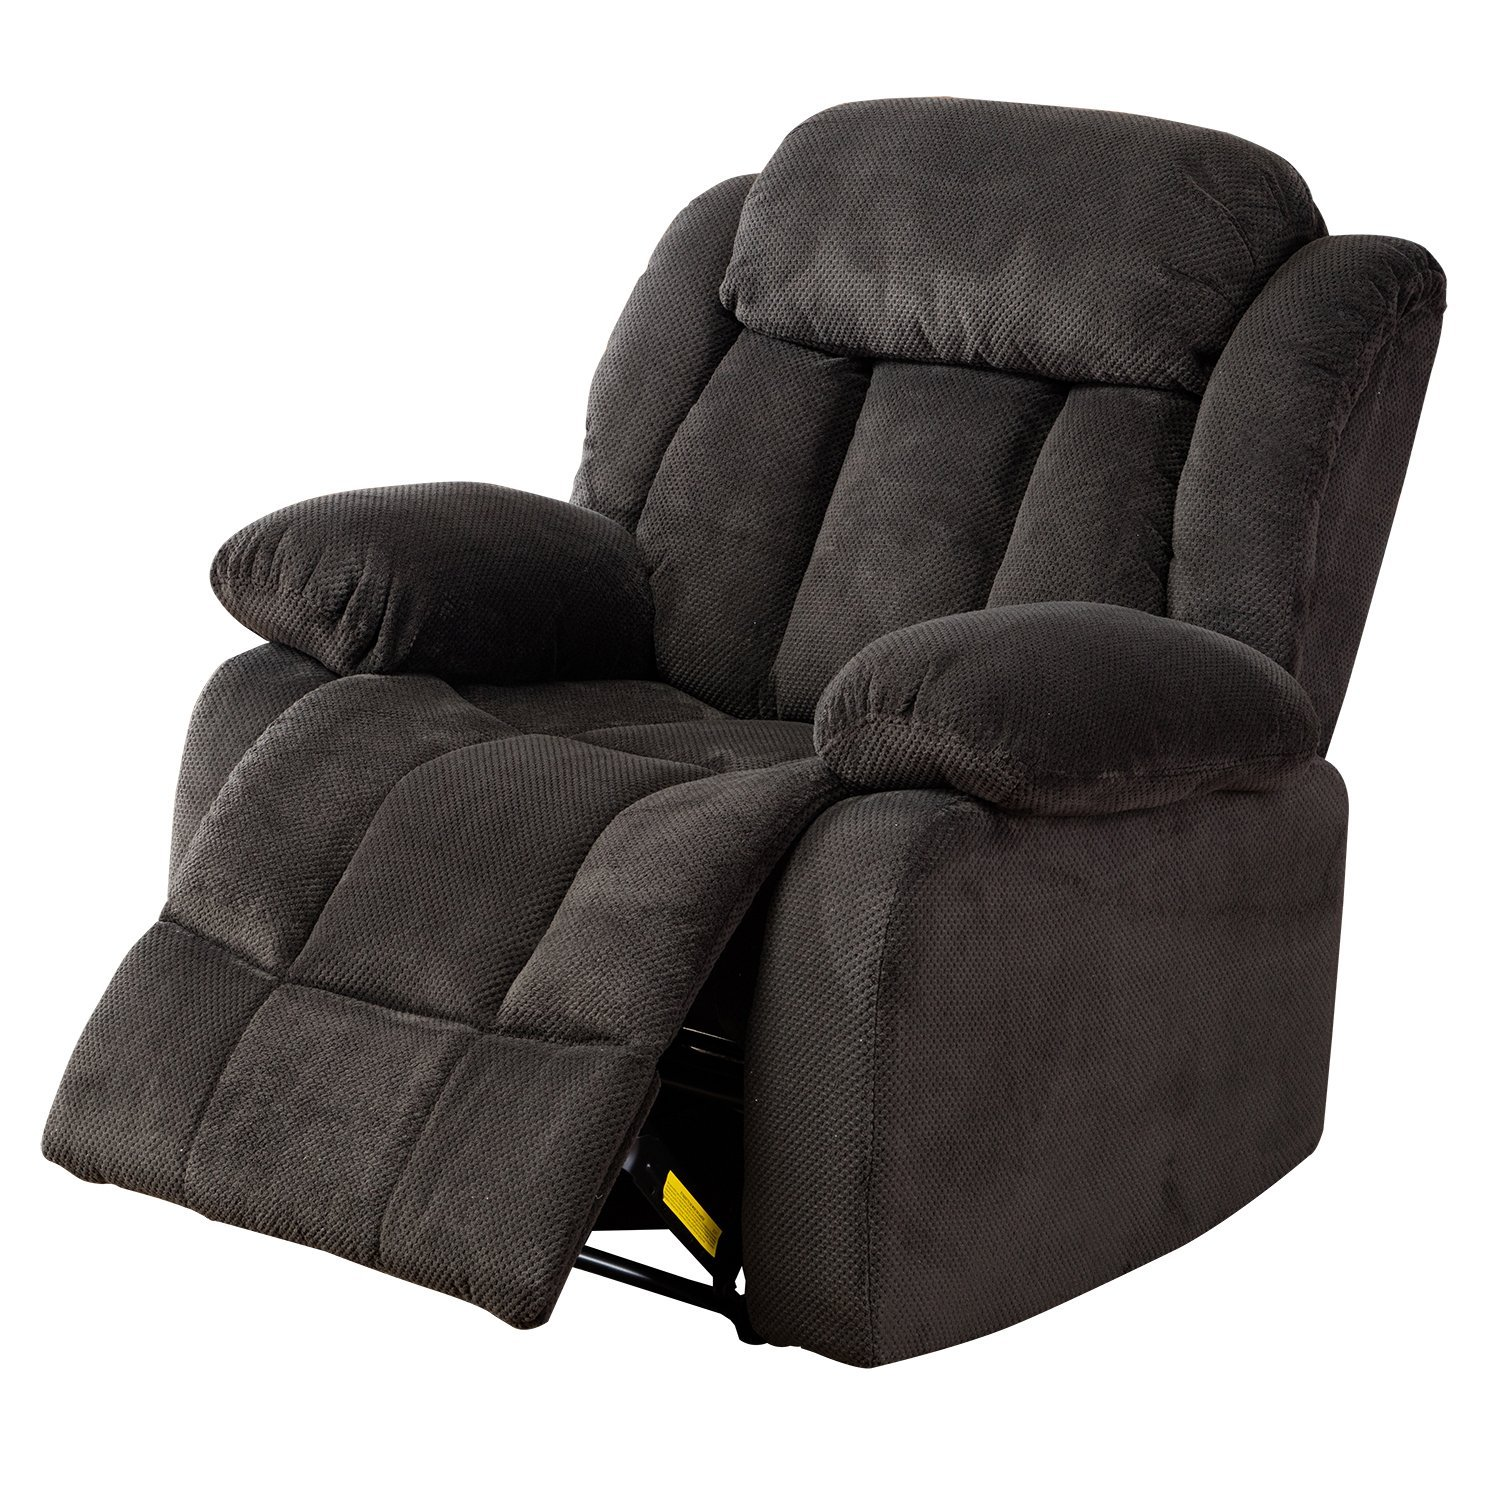 BONZY Recliner Chair Manual Stretched Recliner Chair Leather Cover Living Room Lounge Chair